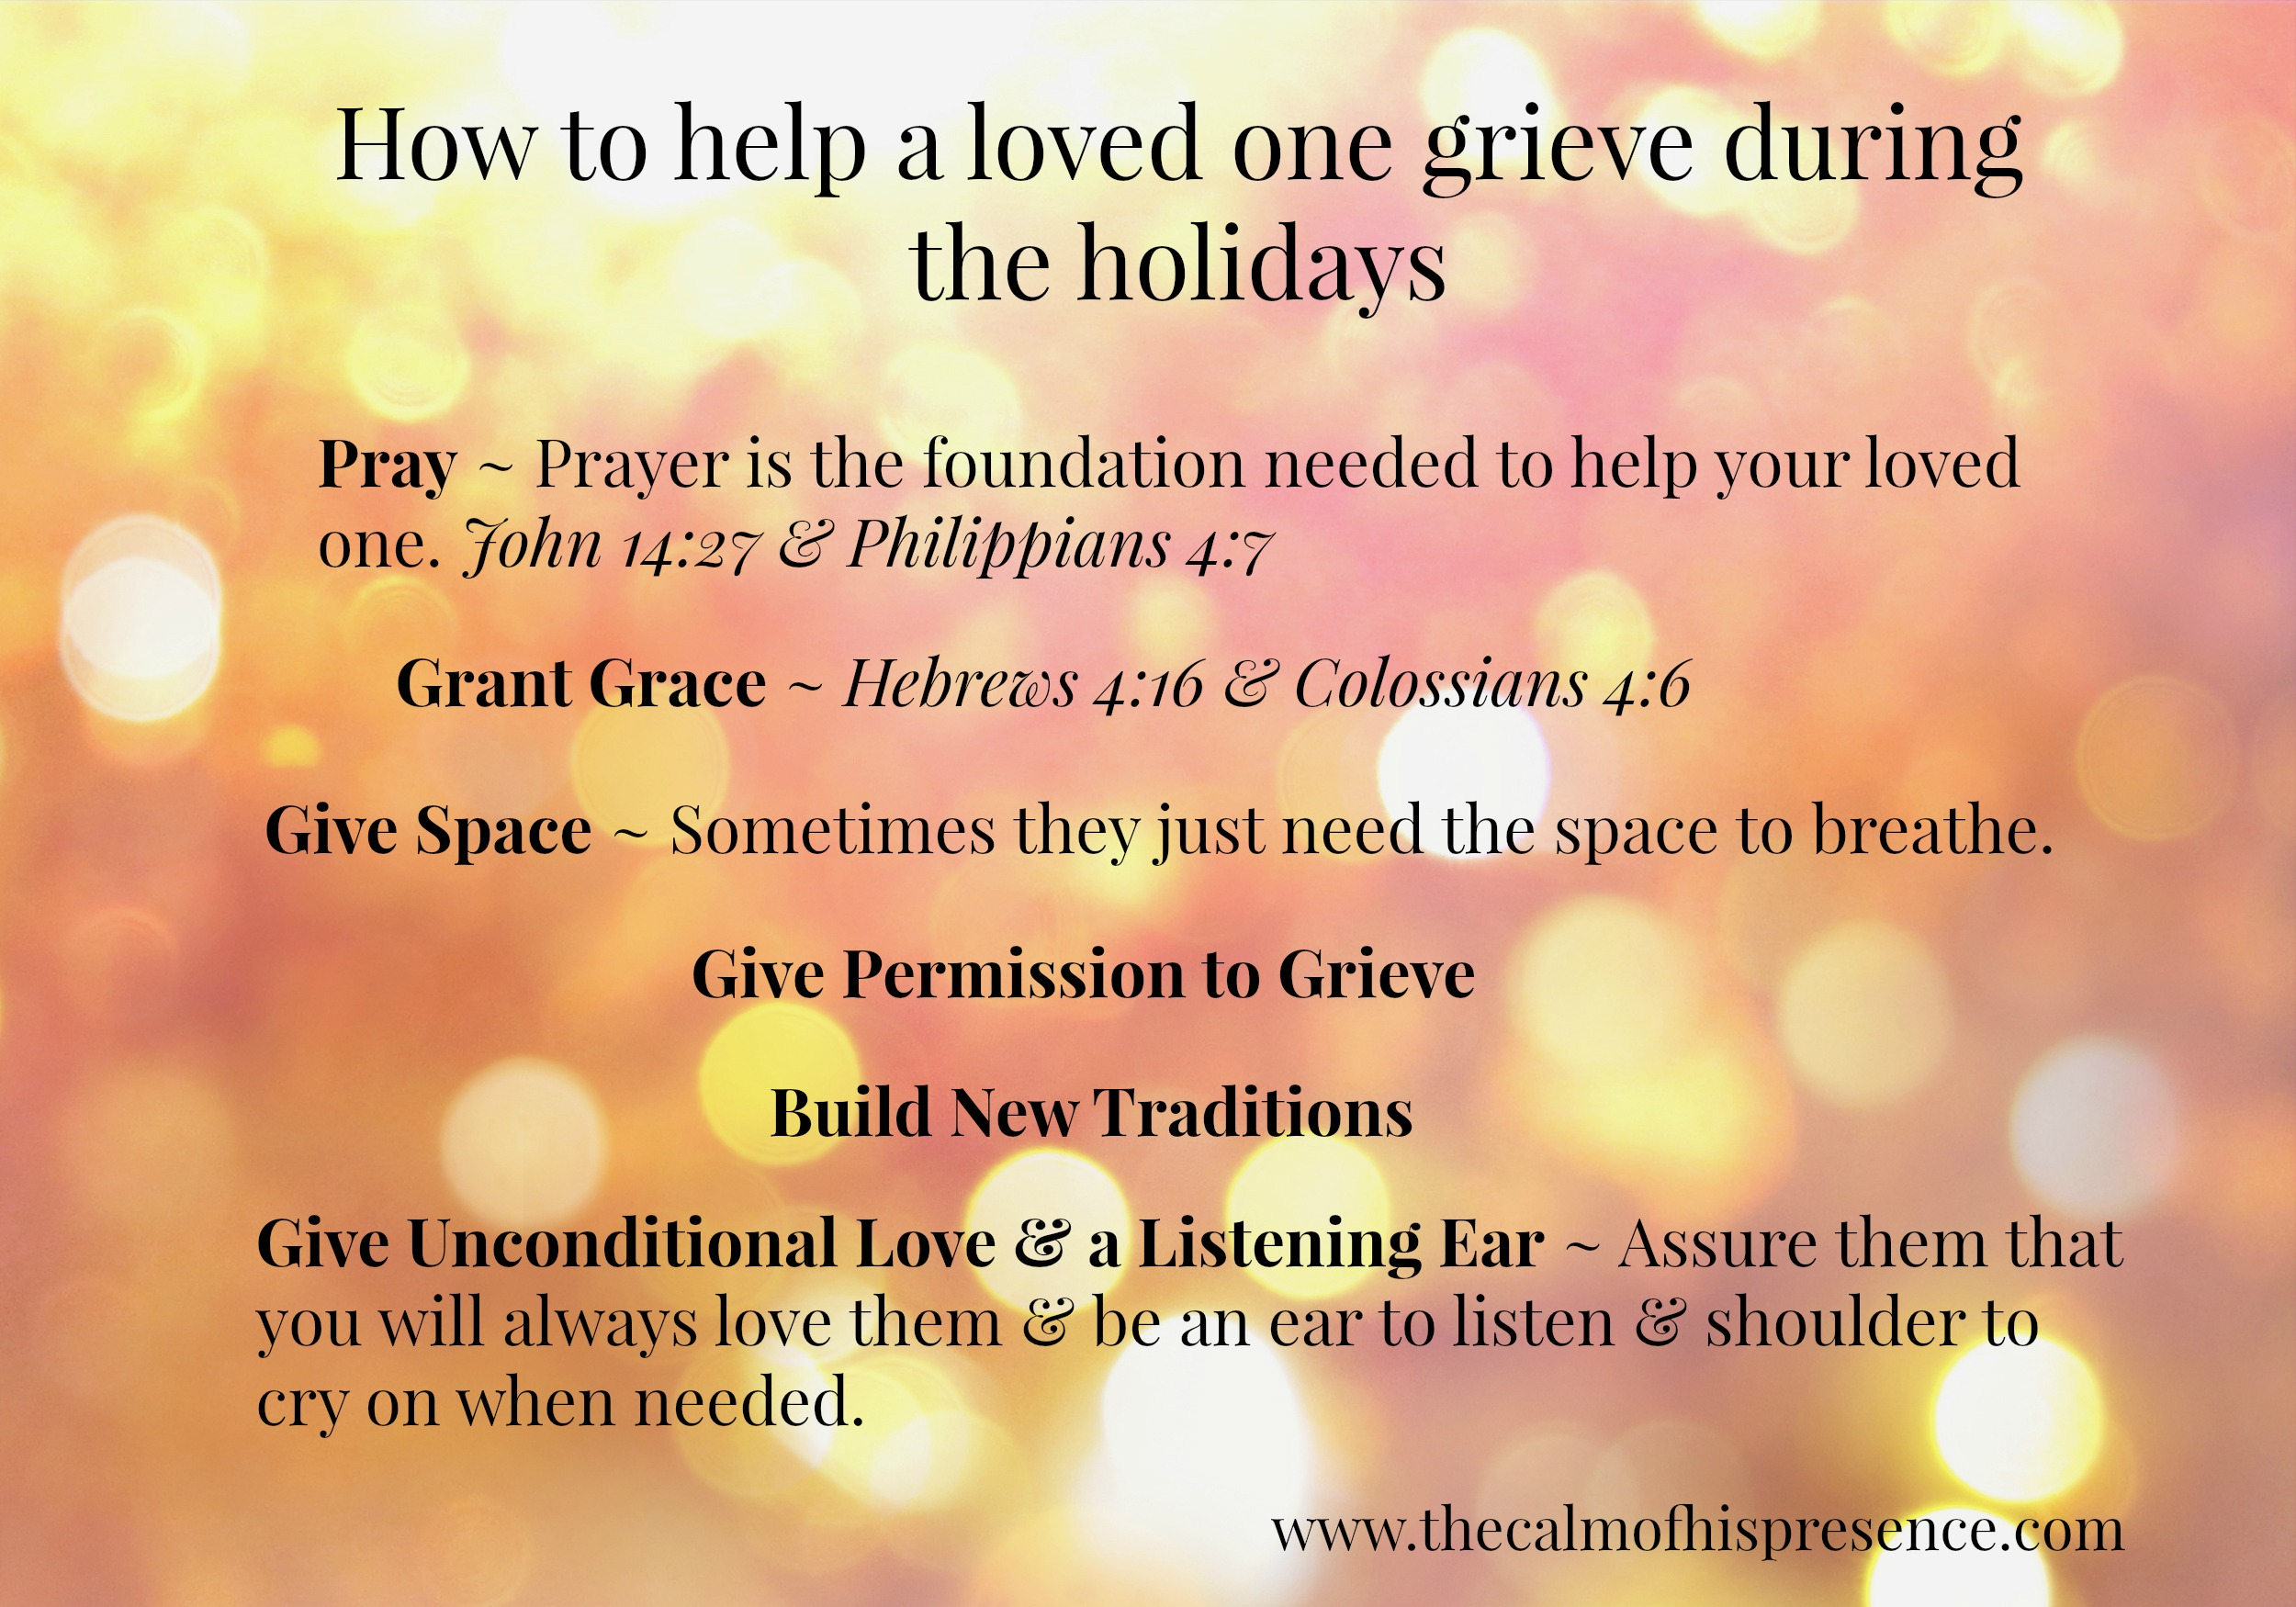 How To Help A Loved One Grieving Through The Holidays